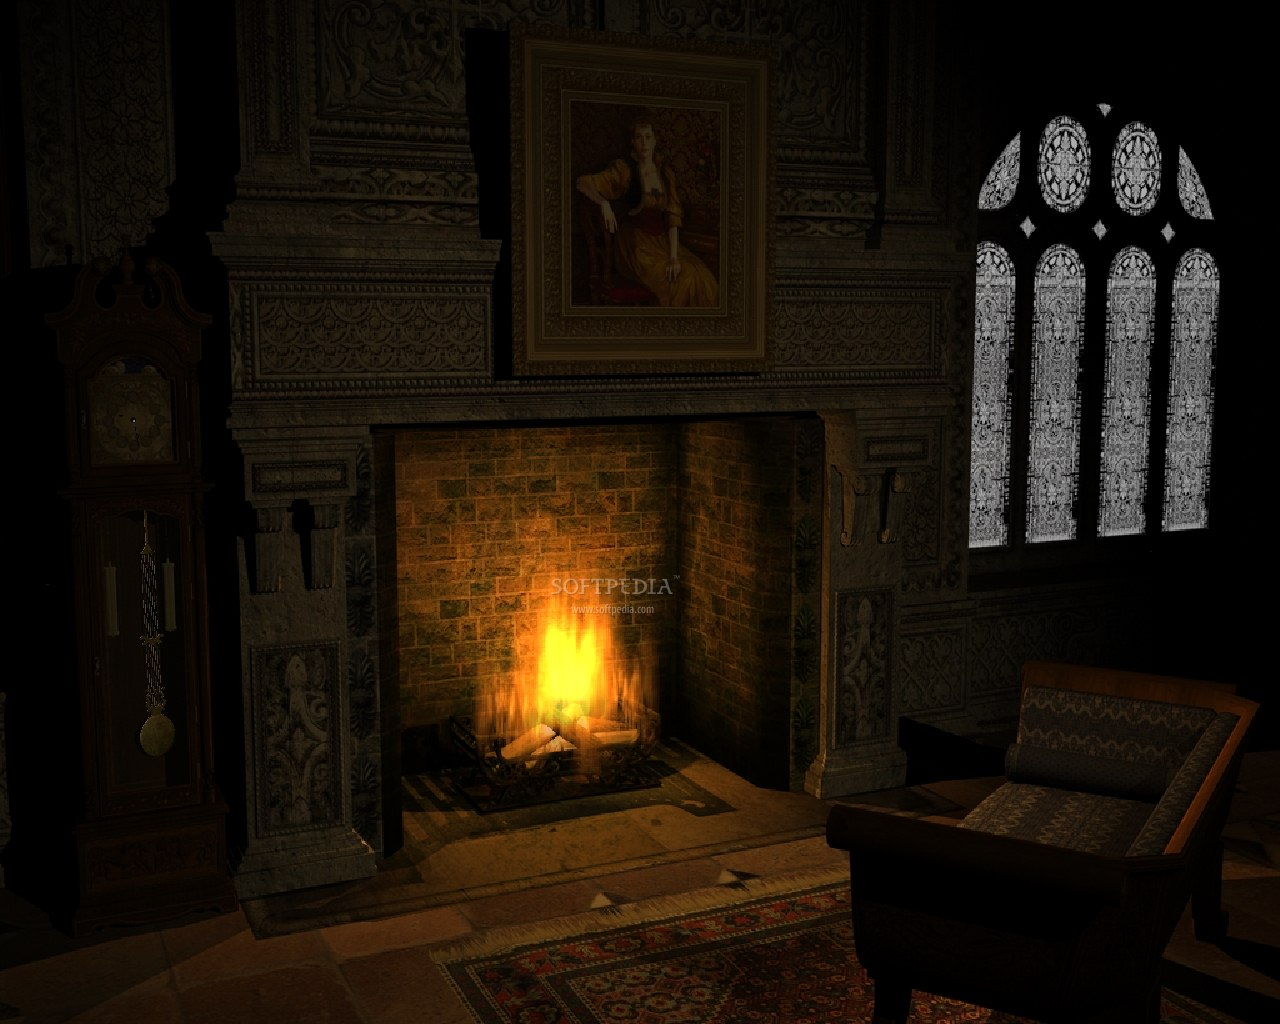 Screenshot 1 of Old Fireplace - Animated Wallpaper